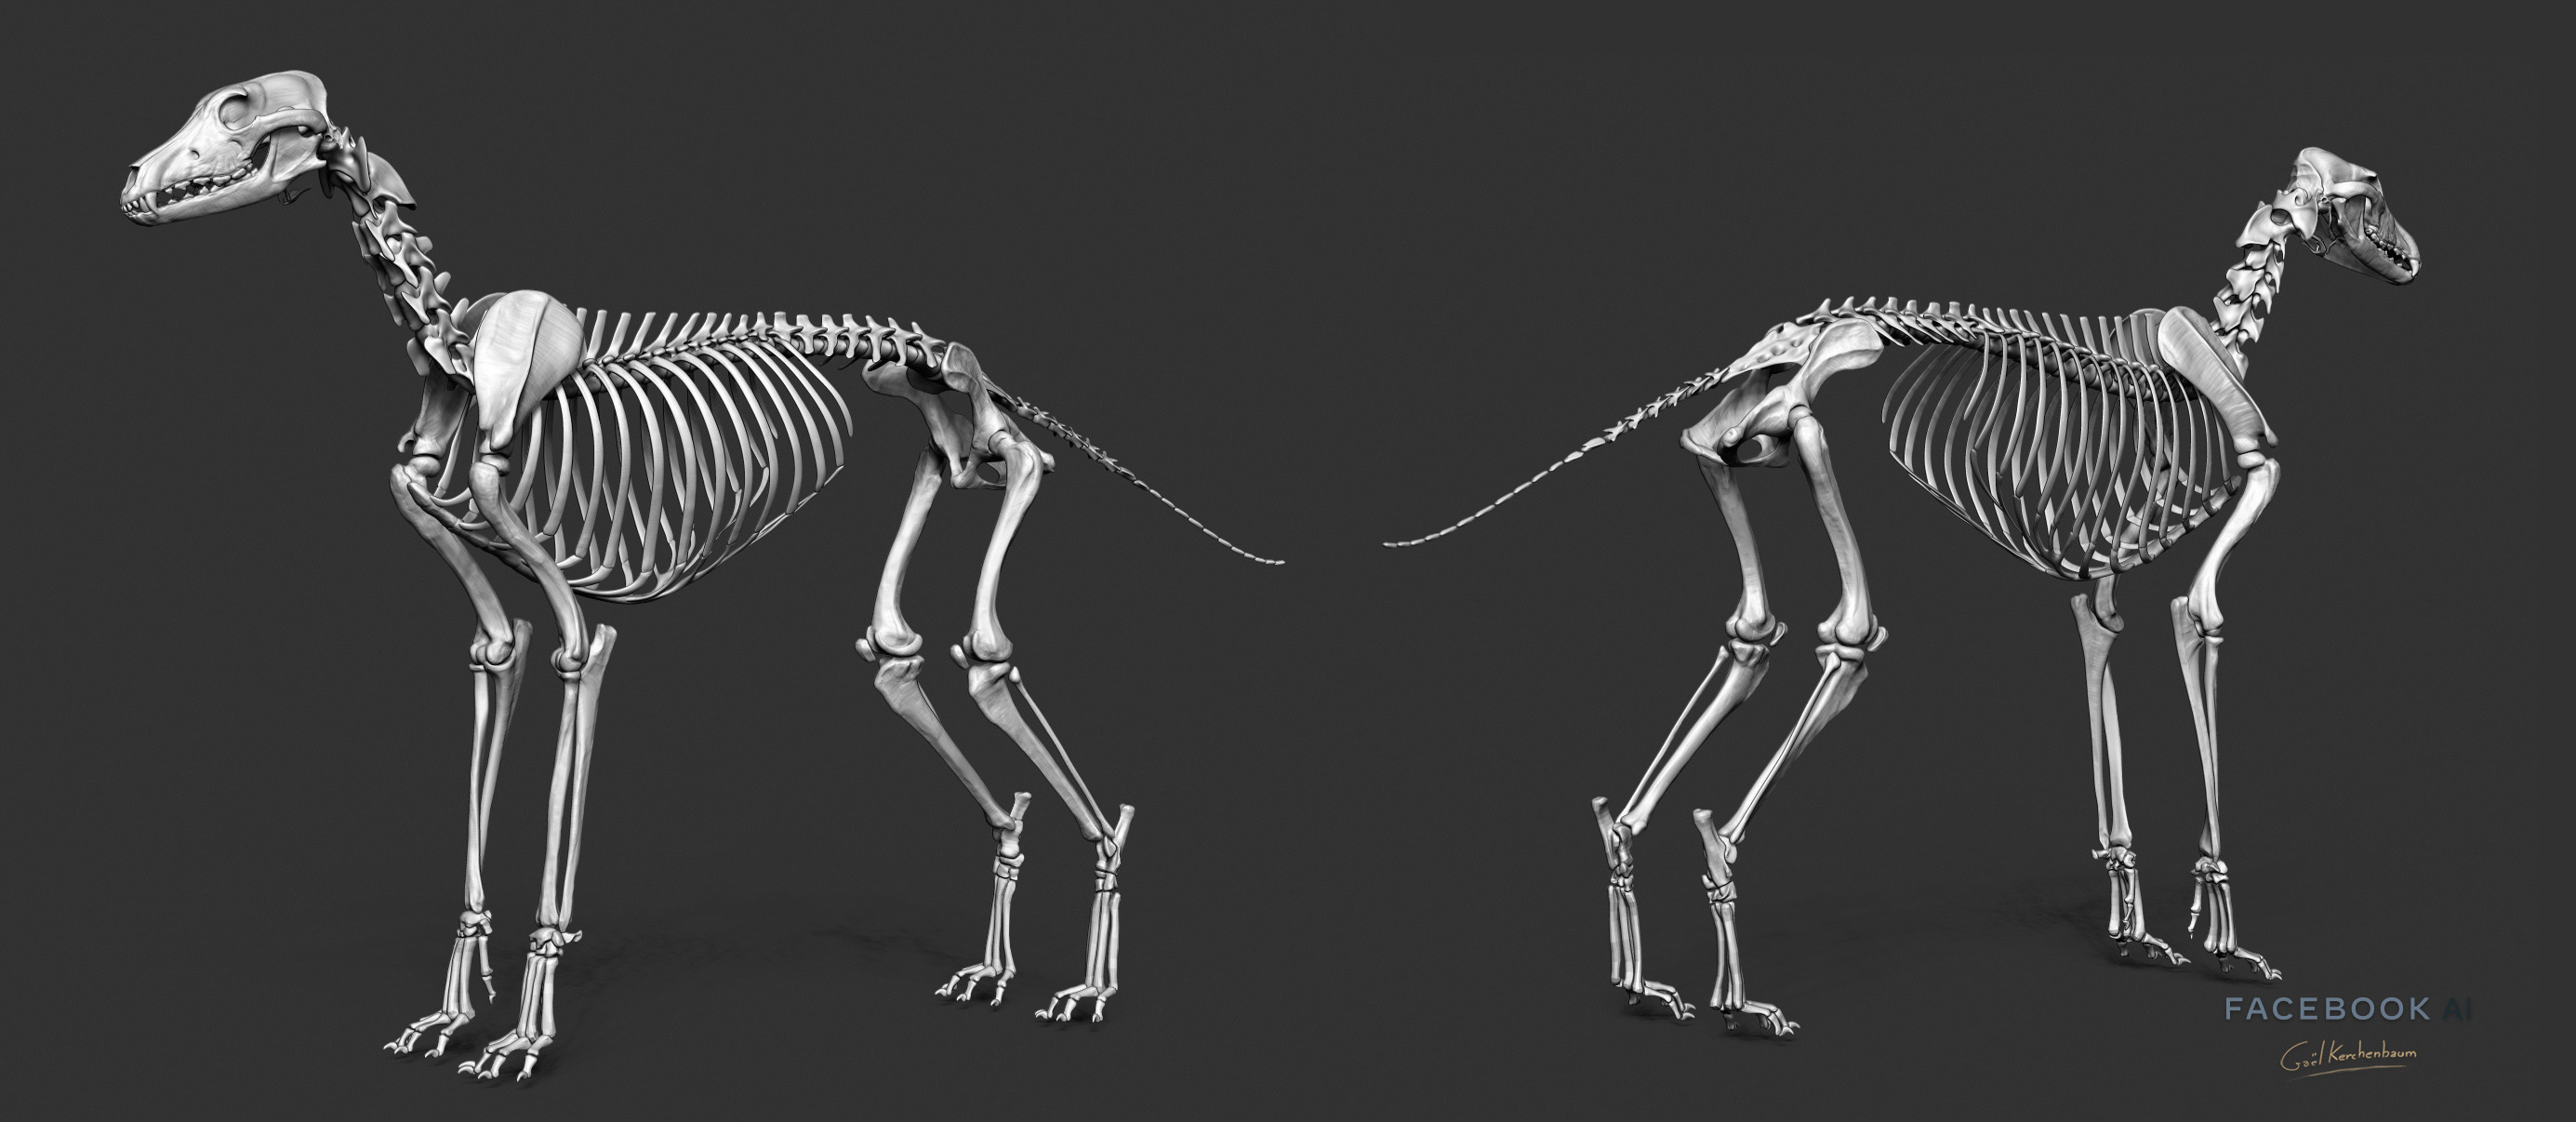 Galgo skeleton. This pass was the first to be modeled to reduce Artistic Bias